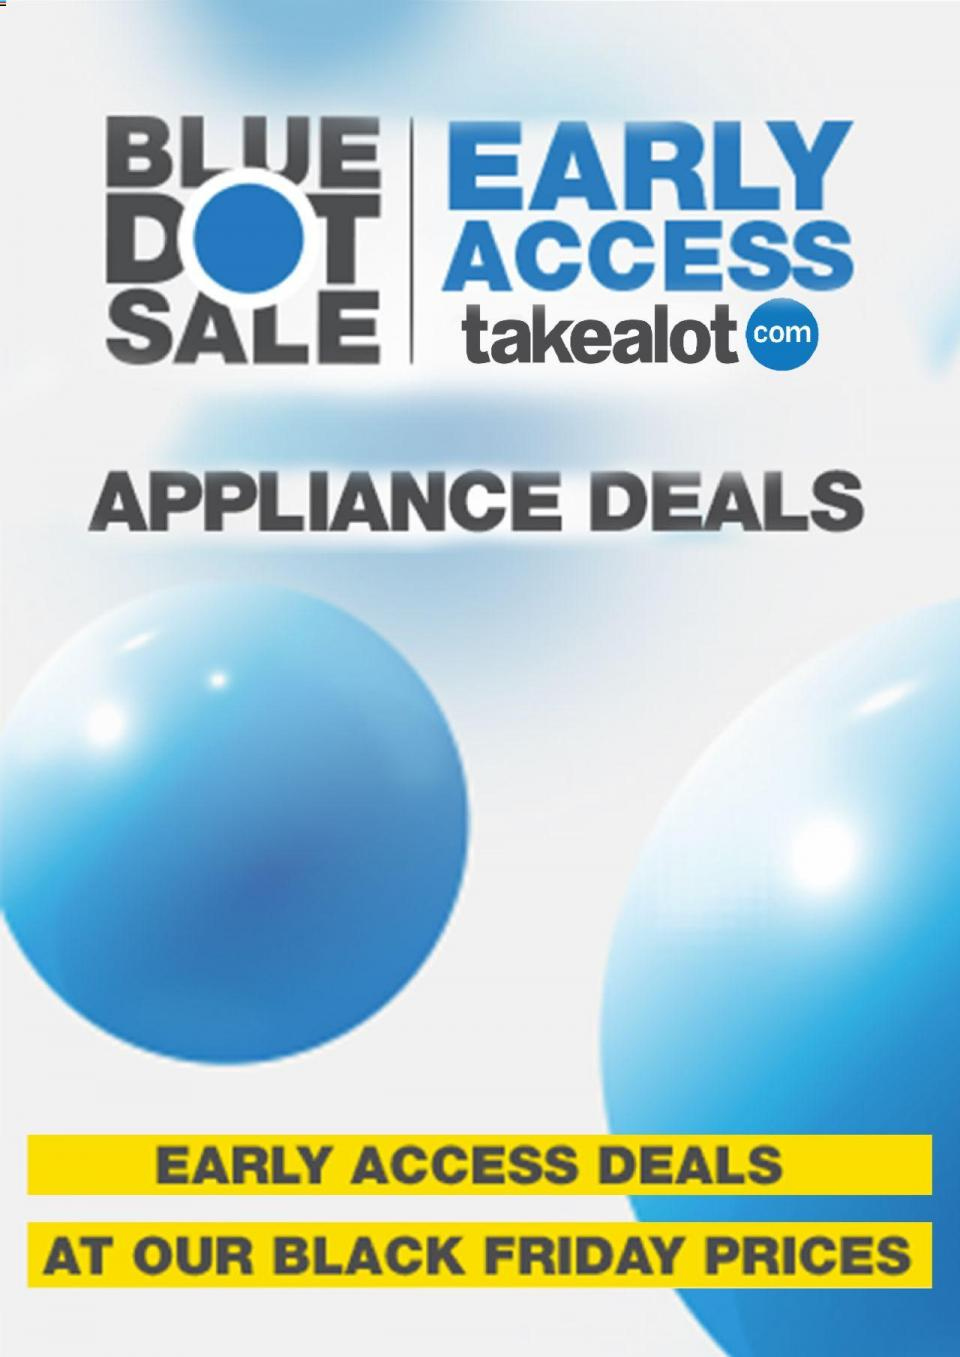 takealot specials black friday appliance deals 27 november 2019